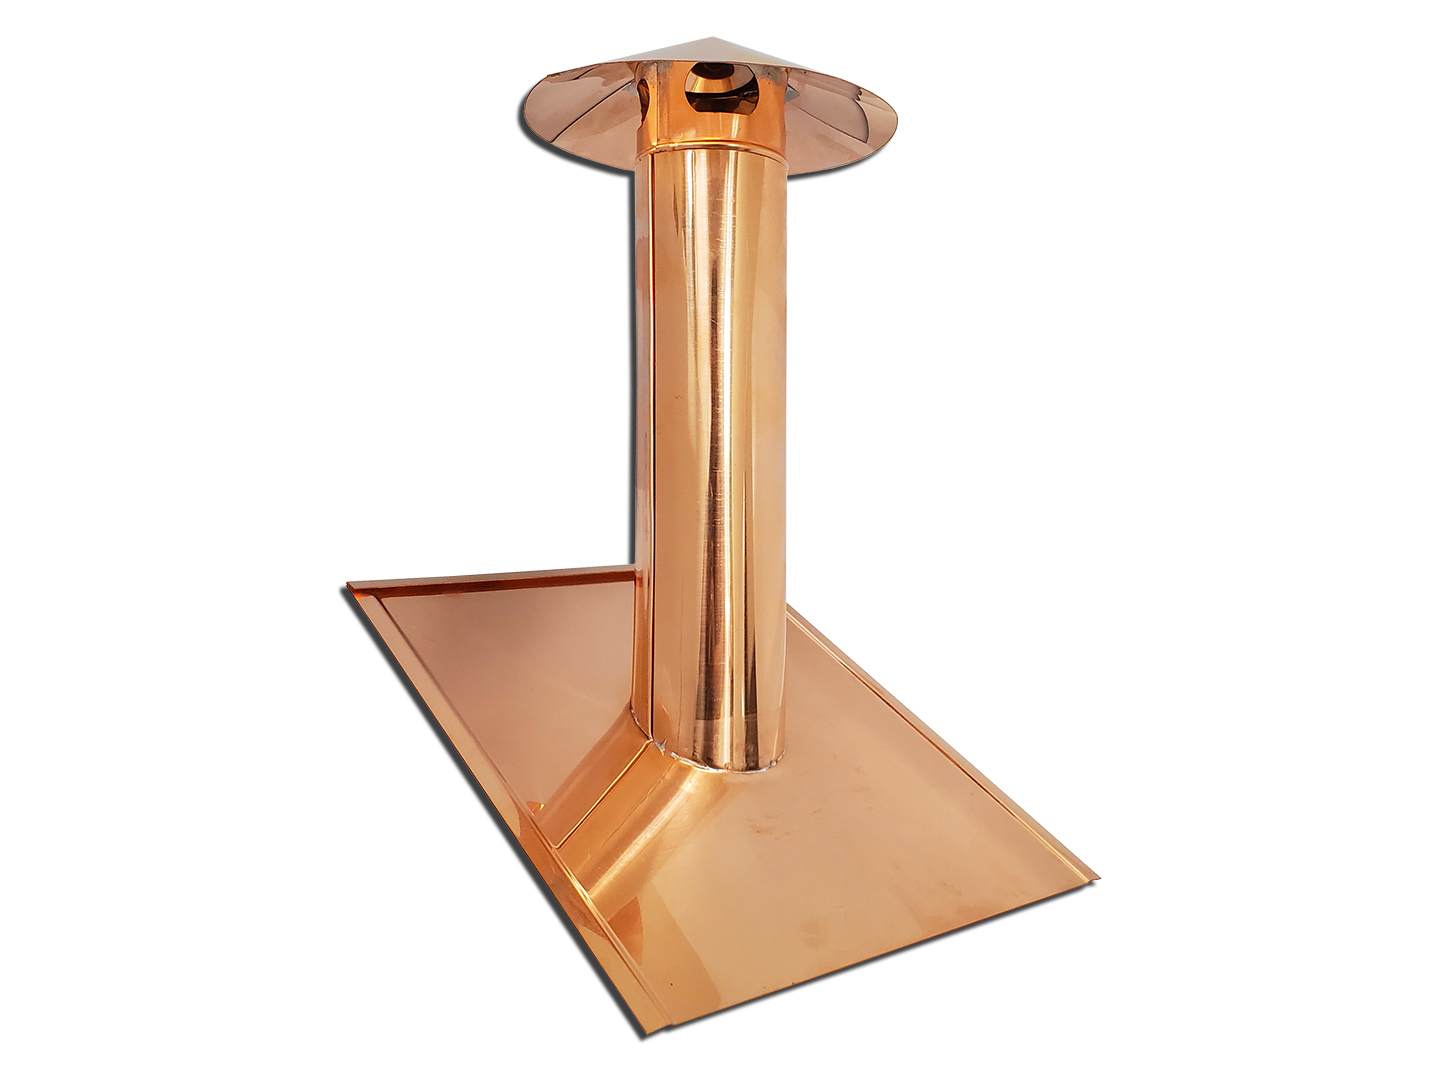 Copper pipe roof vent cover with mounting flange